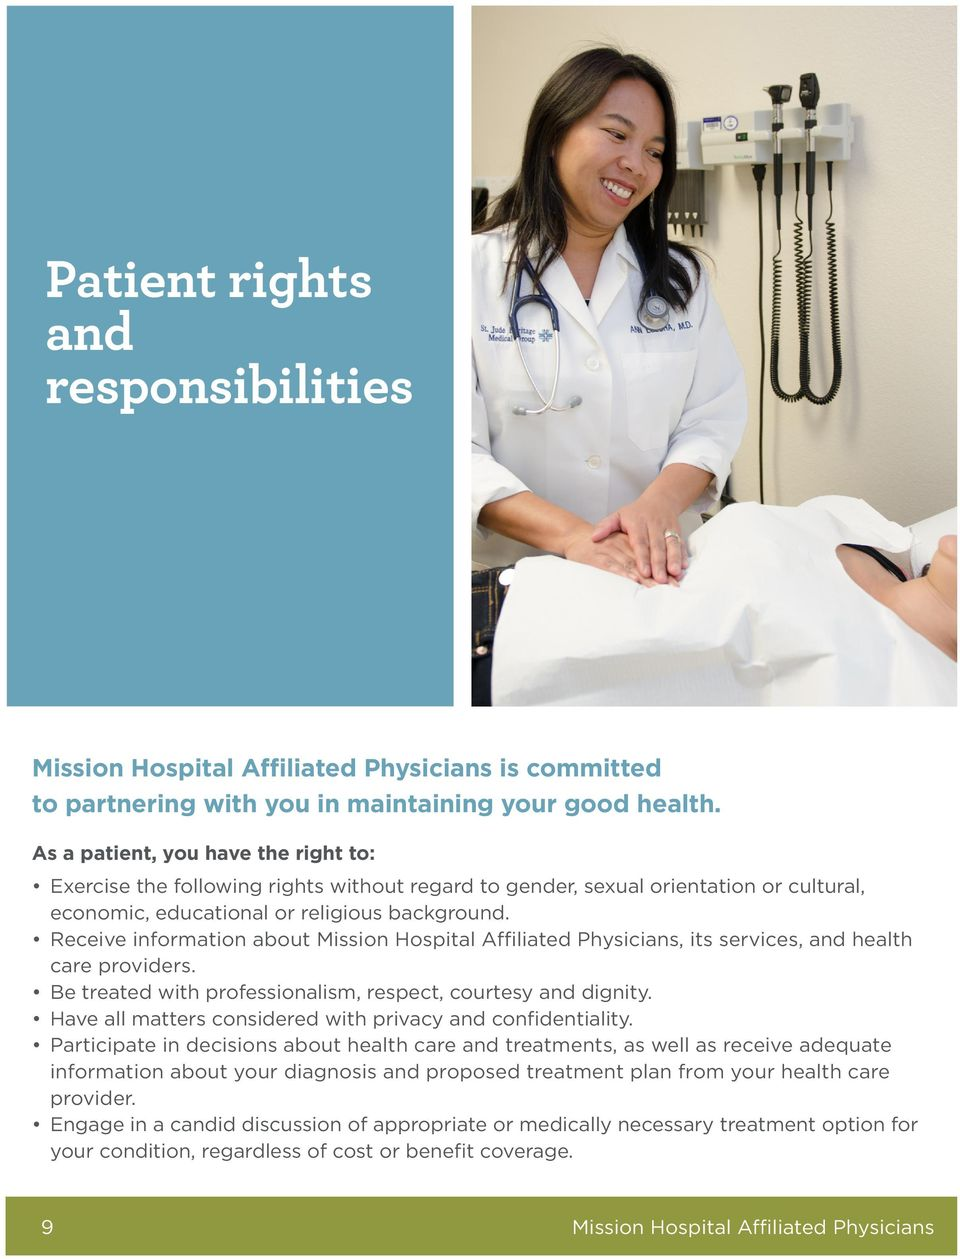 Receive information about Mission Hospital Affiliated Physicians, its services, and health care providers. Be treated with professionalism, respect, courtesy and dignity.